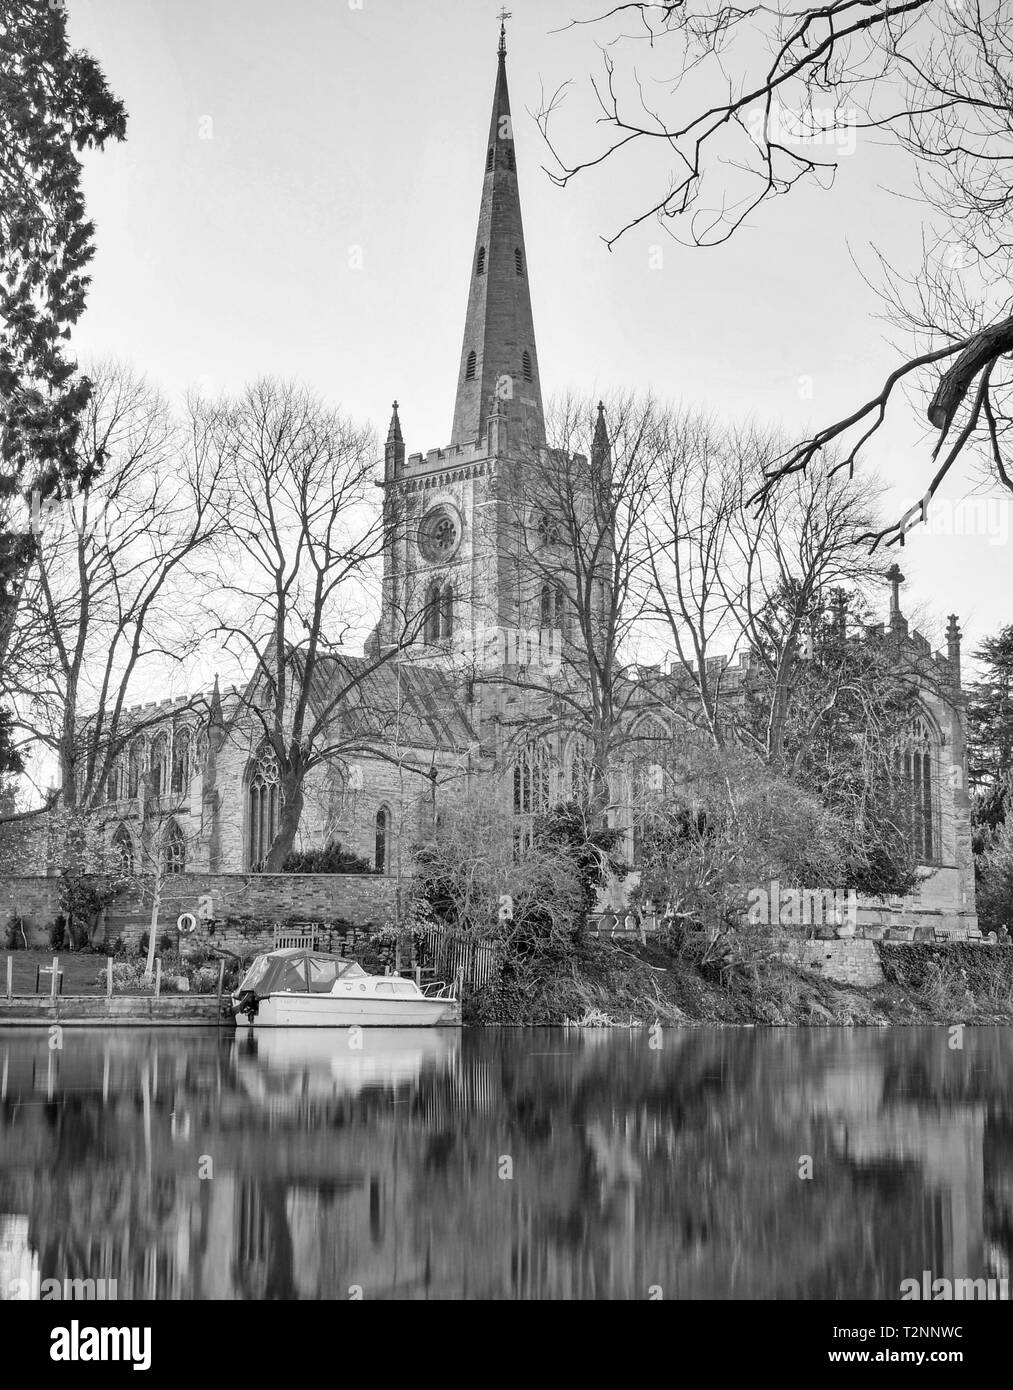 Holy Trinity Church,  Burial Place of William Shakespeare, on the River Avon in Stratford upon Avon, Warwickshire, on March 28th 2019. - Stock Image